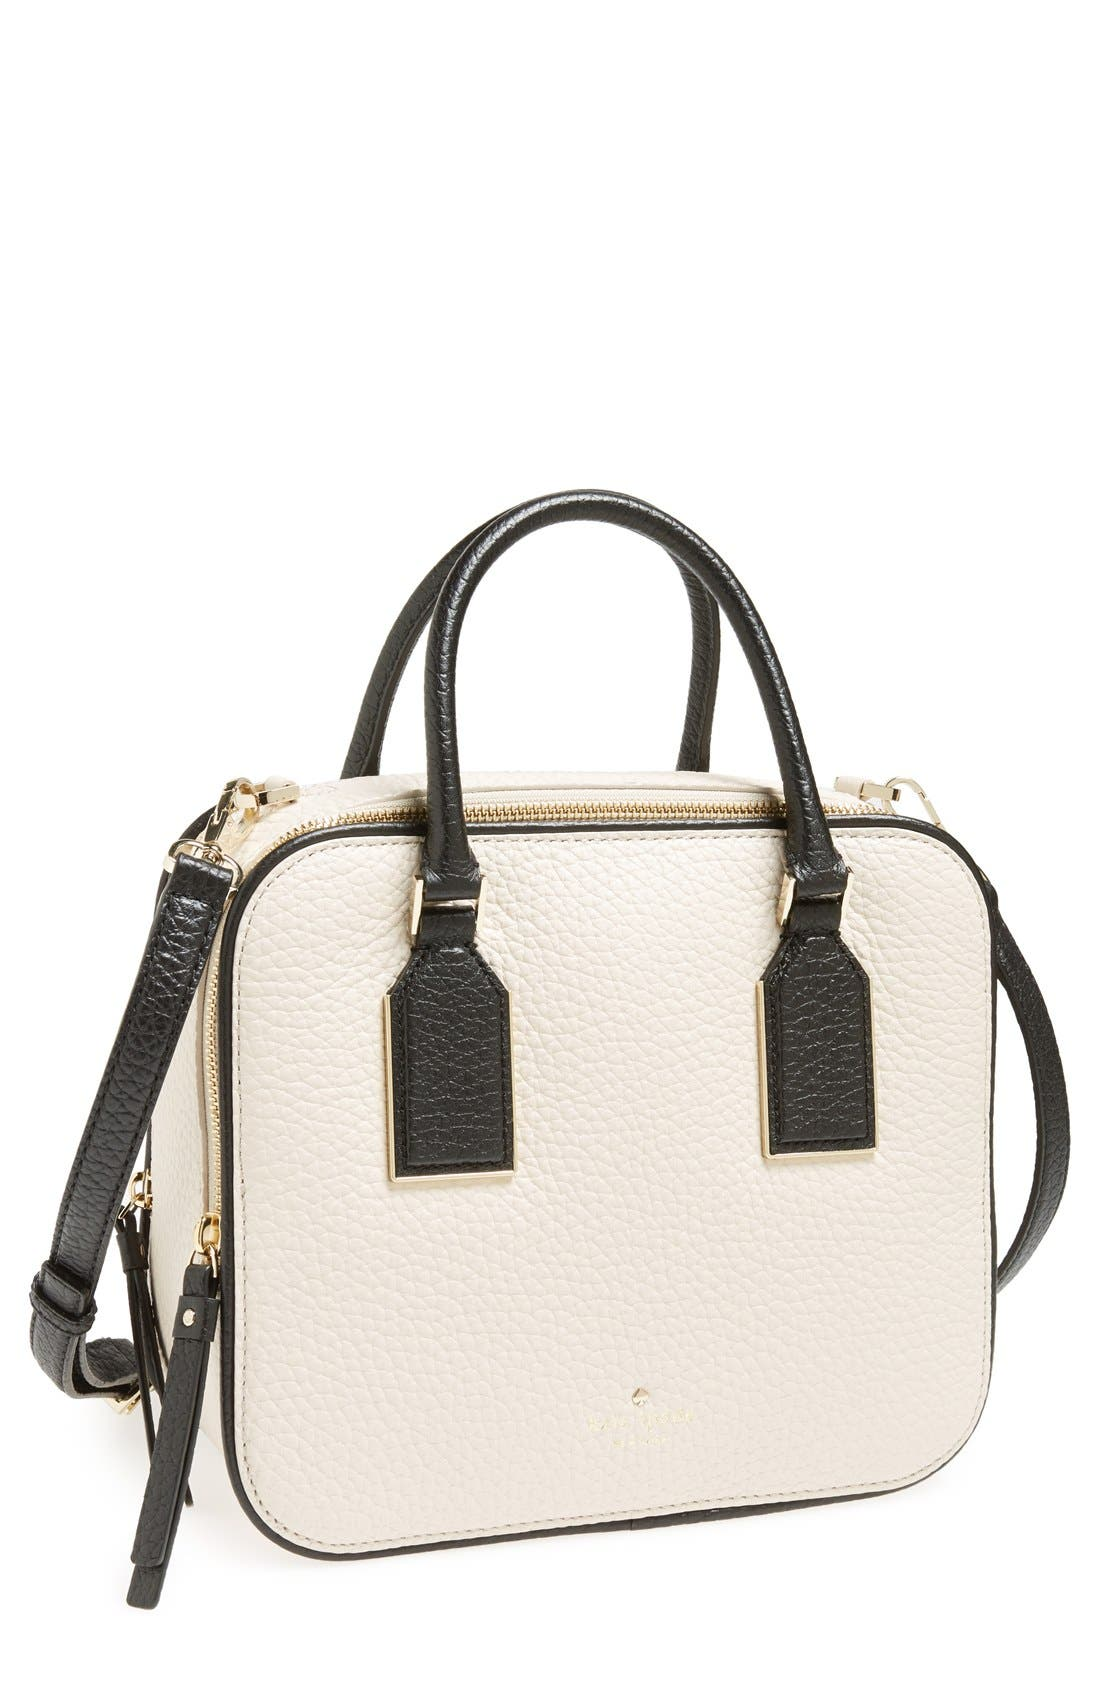 Main Image - kate spade new york 'cecil court - elia' leather satchel